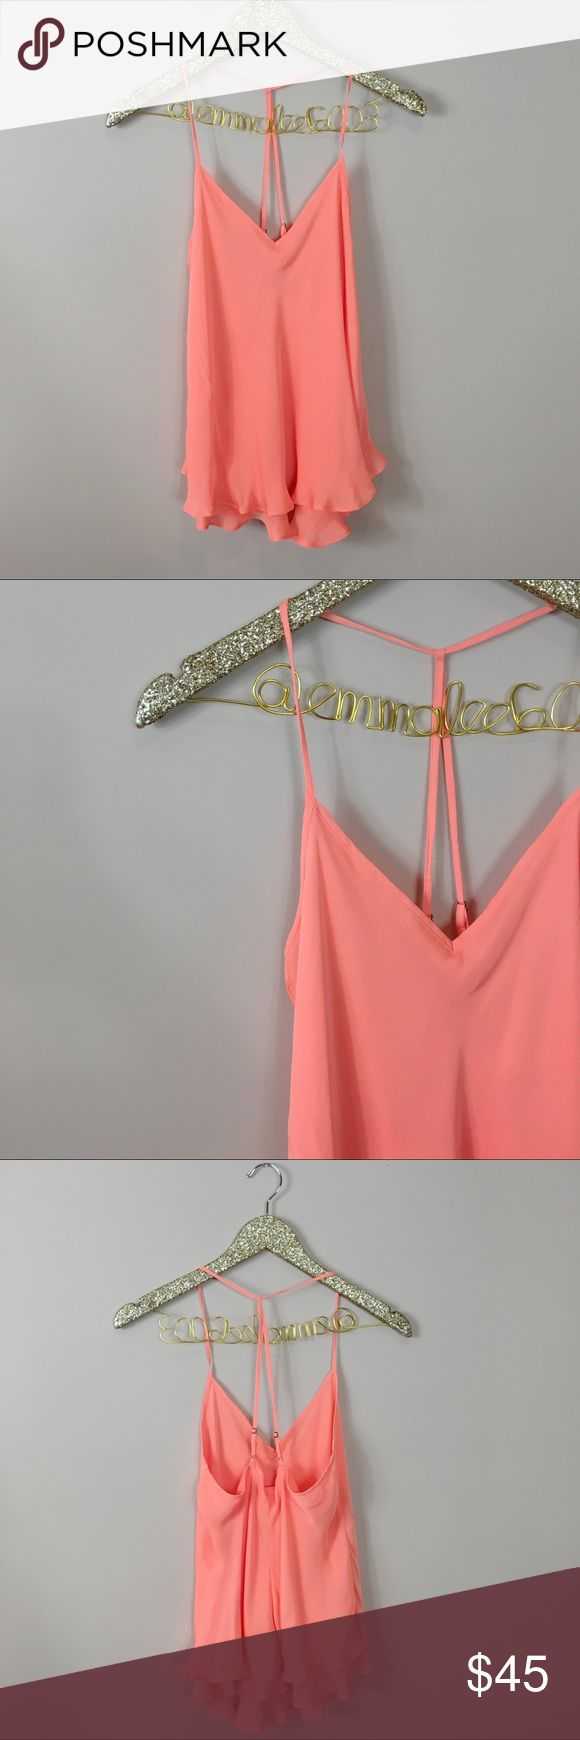 Anthropologie E by Eloise Orange Strappy Tank Excellent condition, no noticeable flaws! Anthropologie E by Eloise Orange Strappy Tank. Bright neon orange color with scalloped detail at bottom. Adjustable straps. So cute alone or under a Cardigan. Size XS. No modeling/trades. Anthropologie Tops Blouses